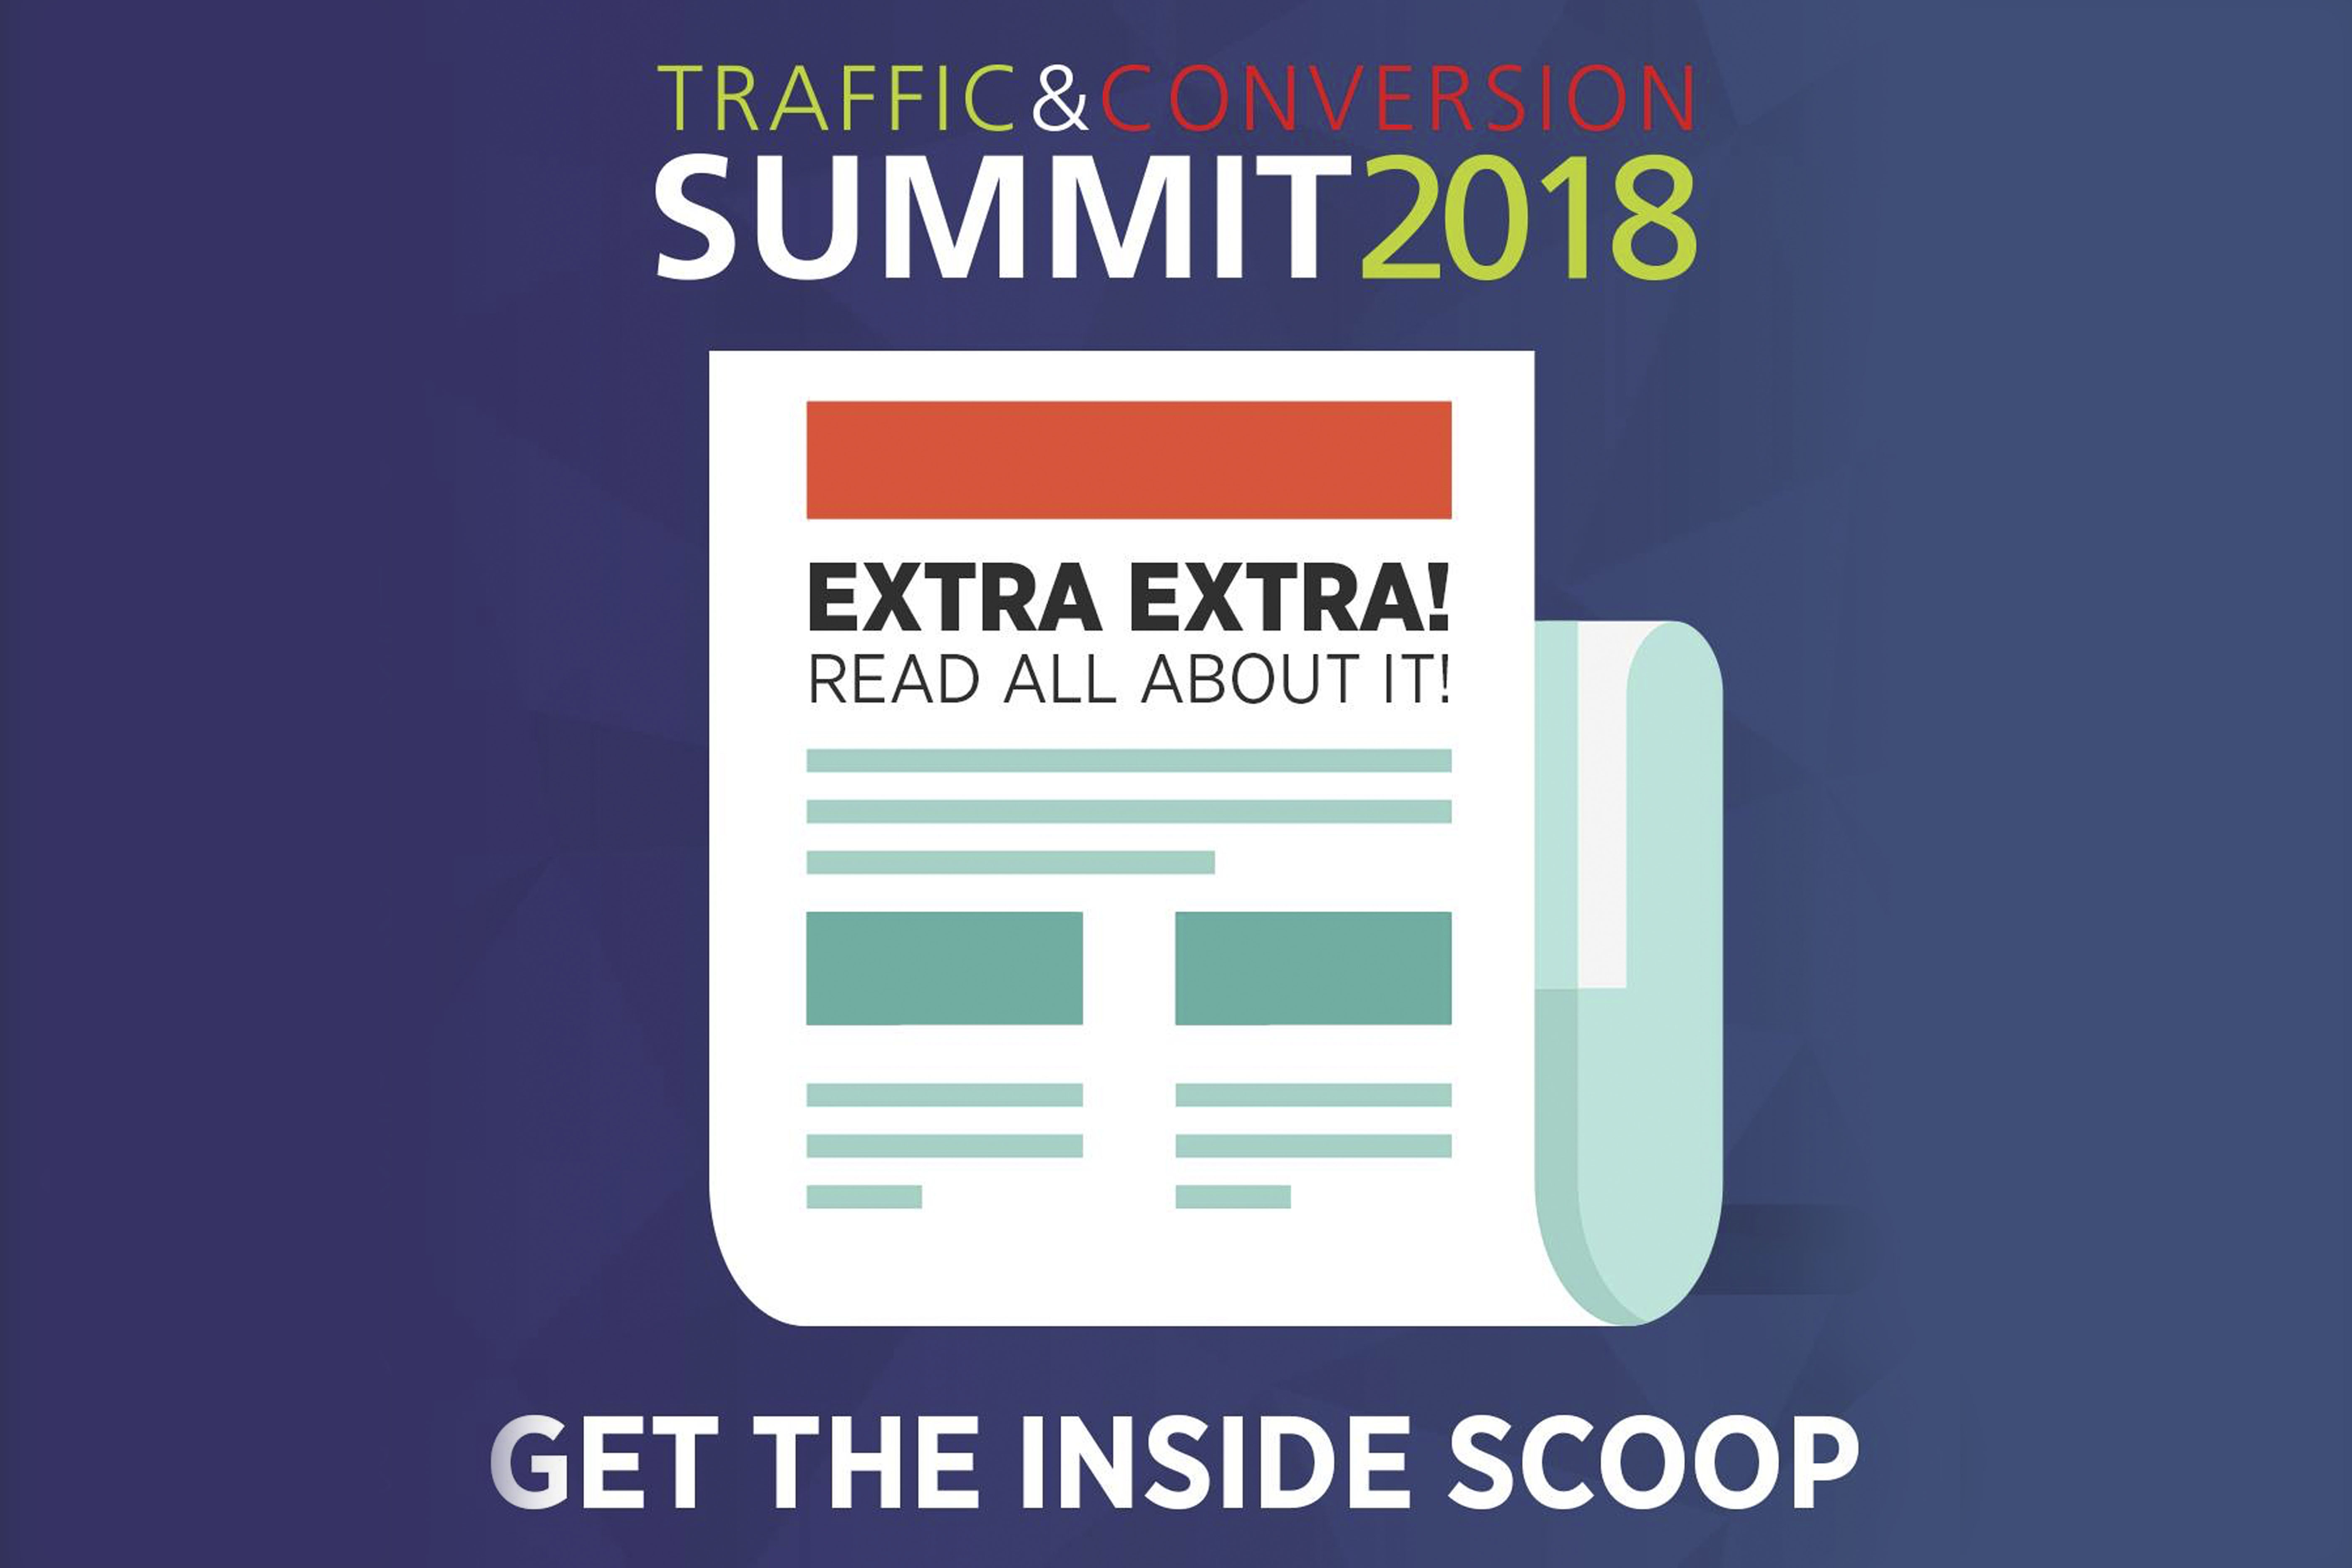 The Top 3 Takeaways from Traffic & Conversion Summit 2018. Skeptics Welcome.